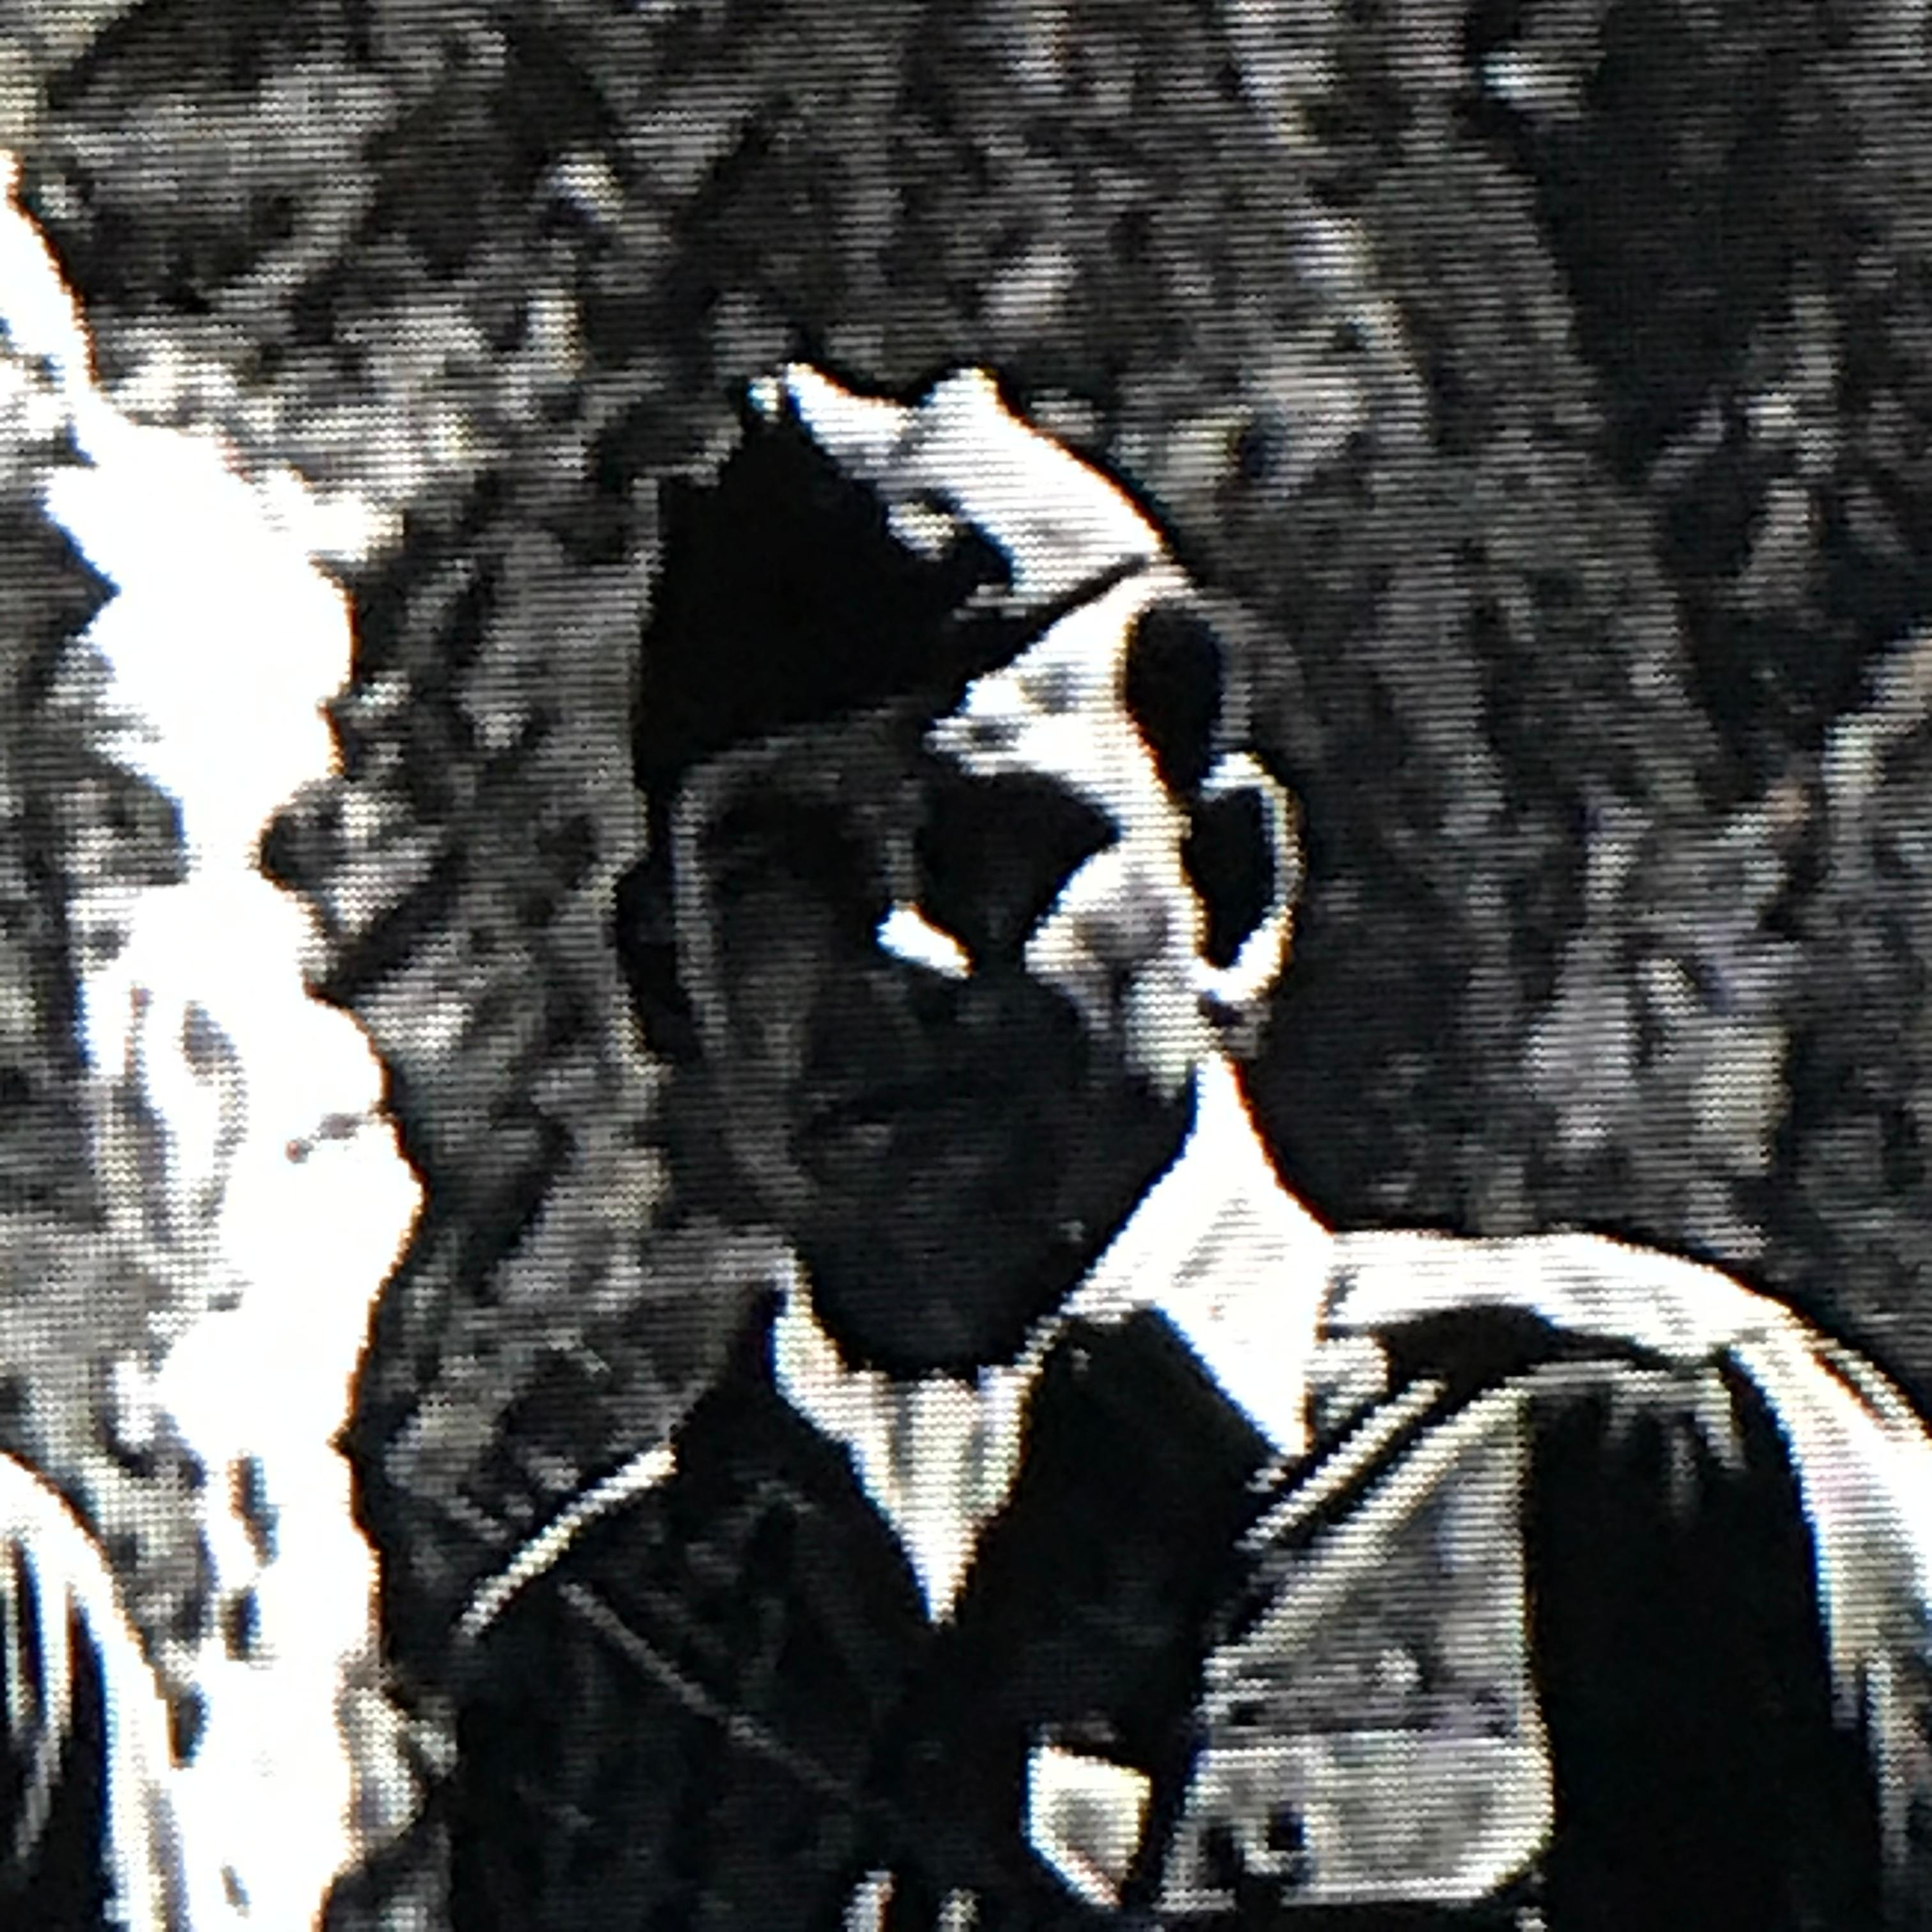 Looking to identify this 7th Army soldier